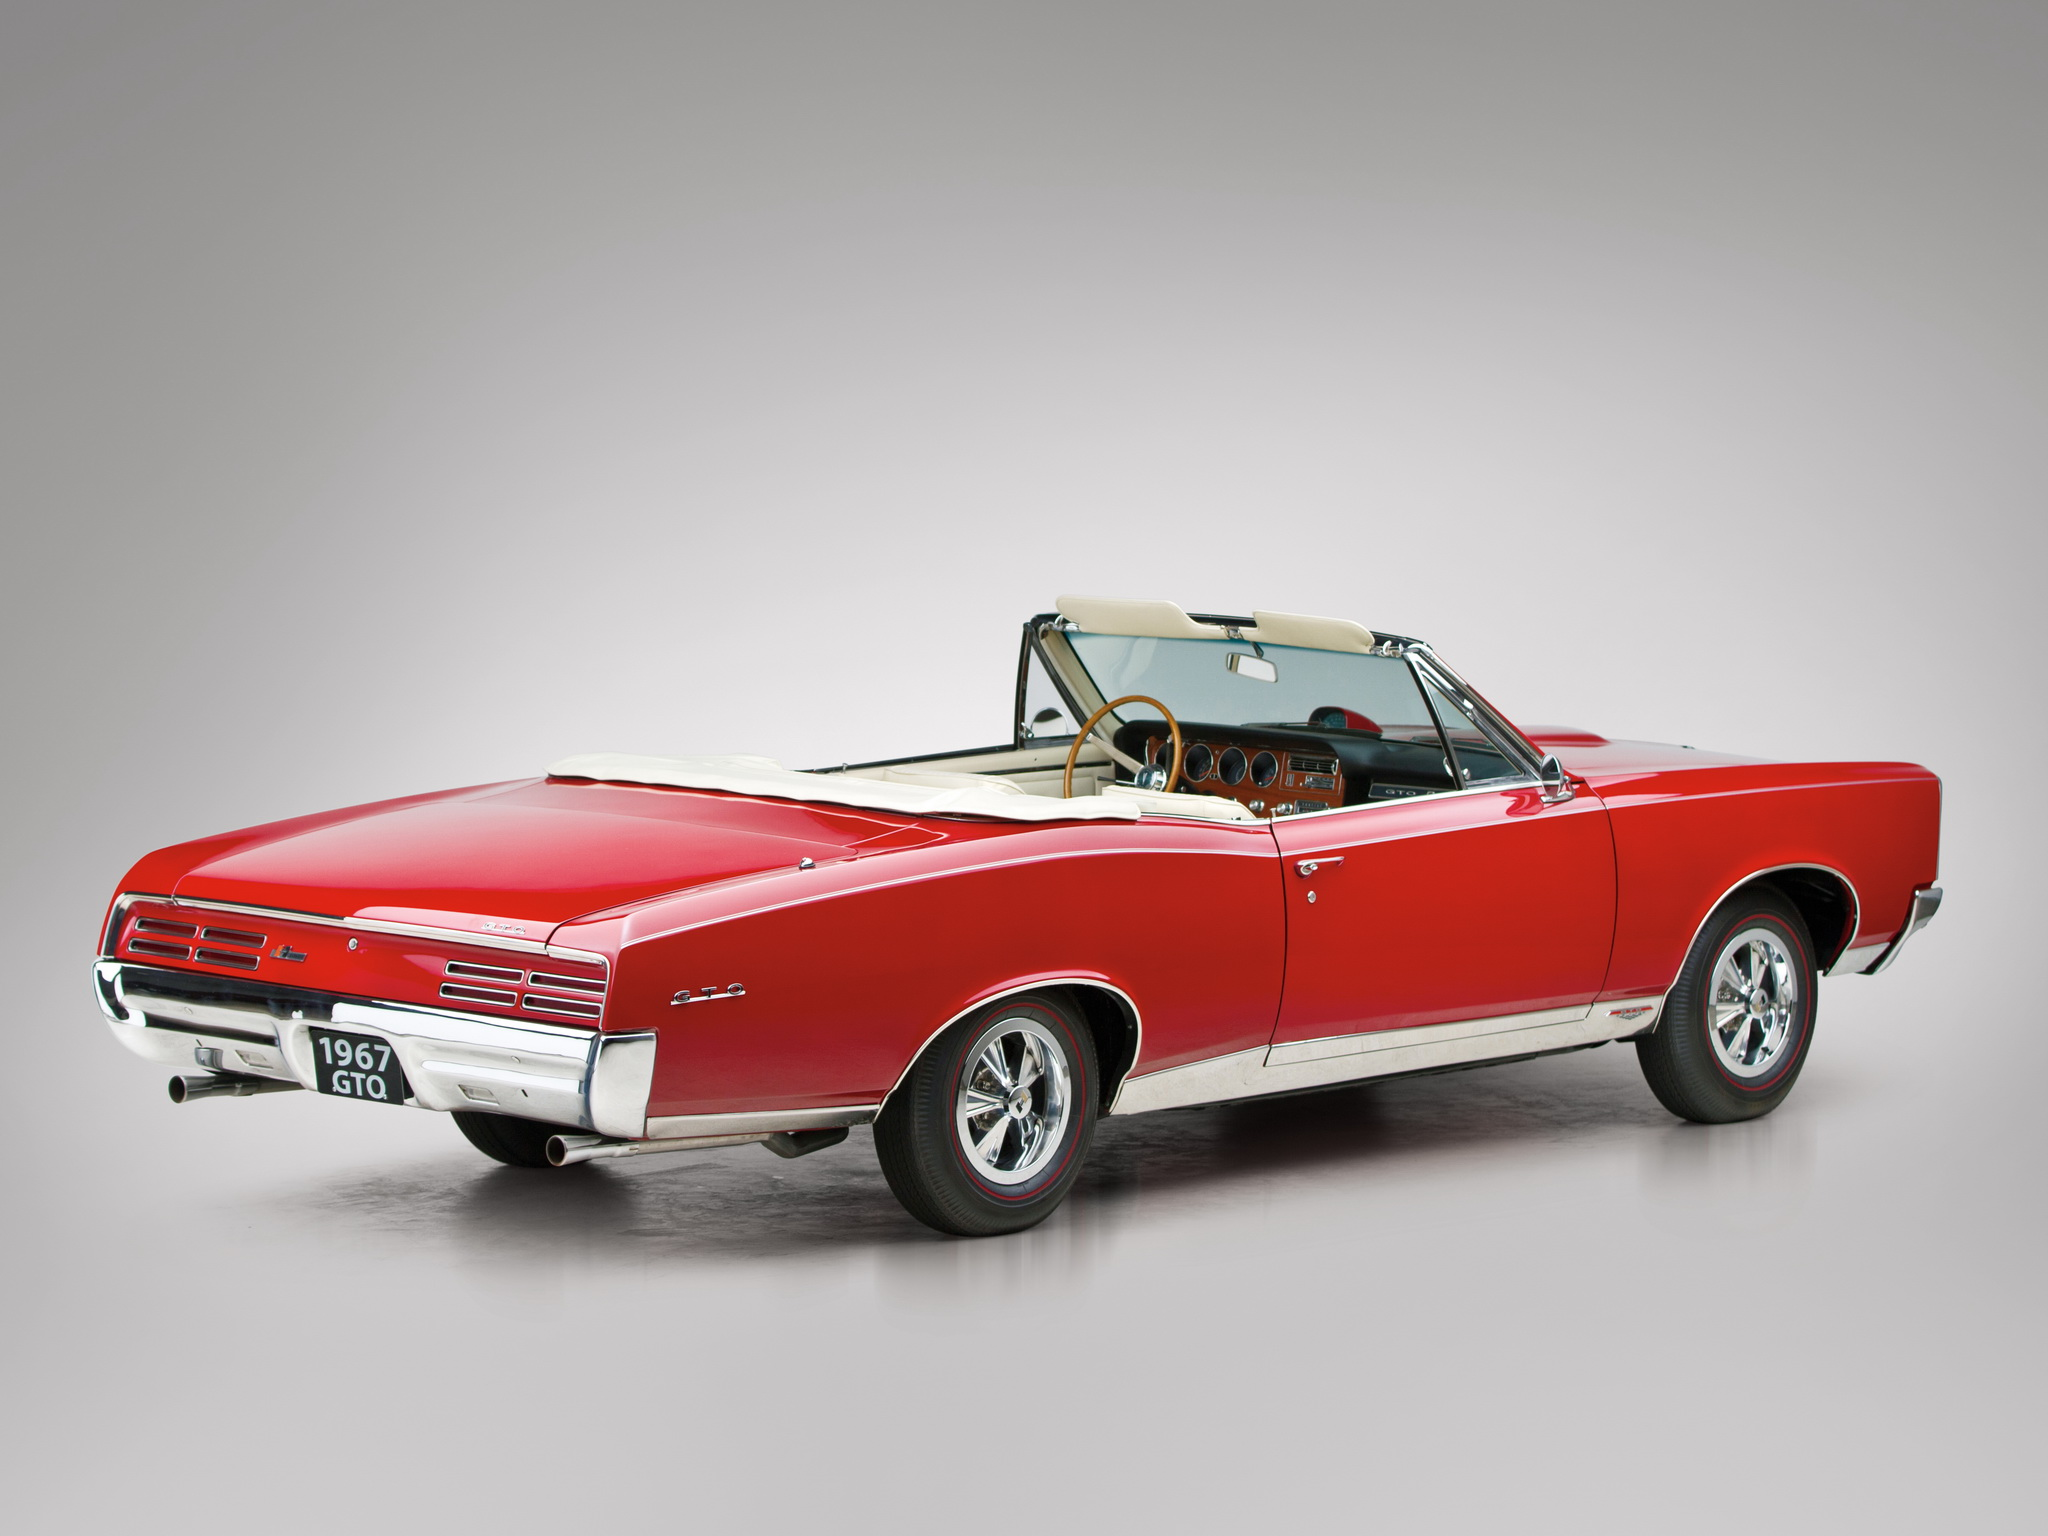 1967 Pontiac Tempest GTO Convertible muscle classic f wallpaper 2048x1536